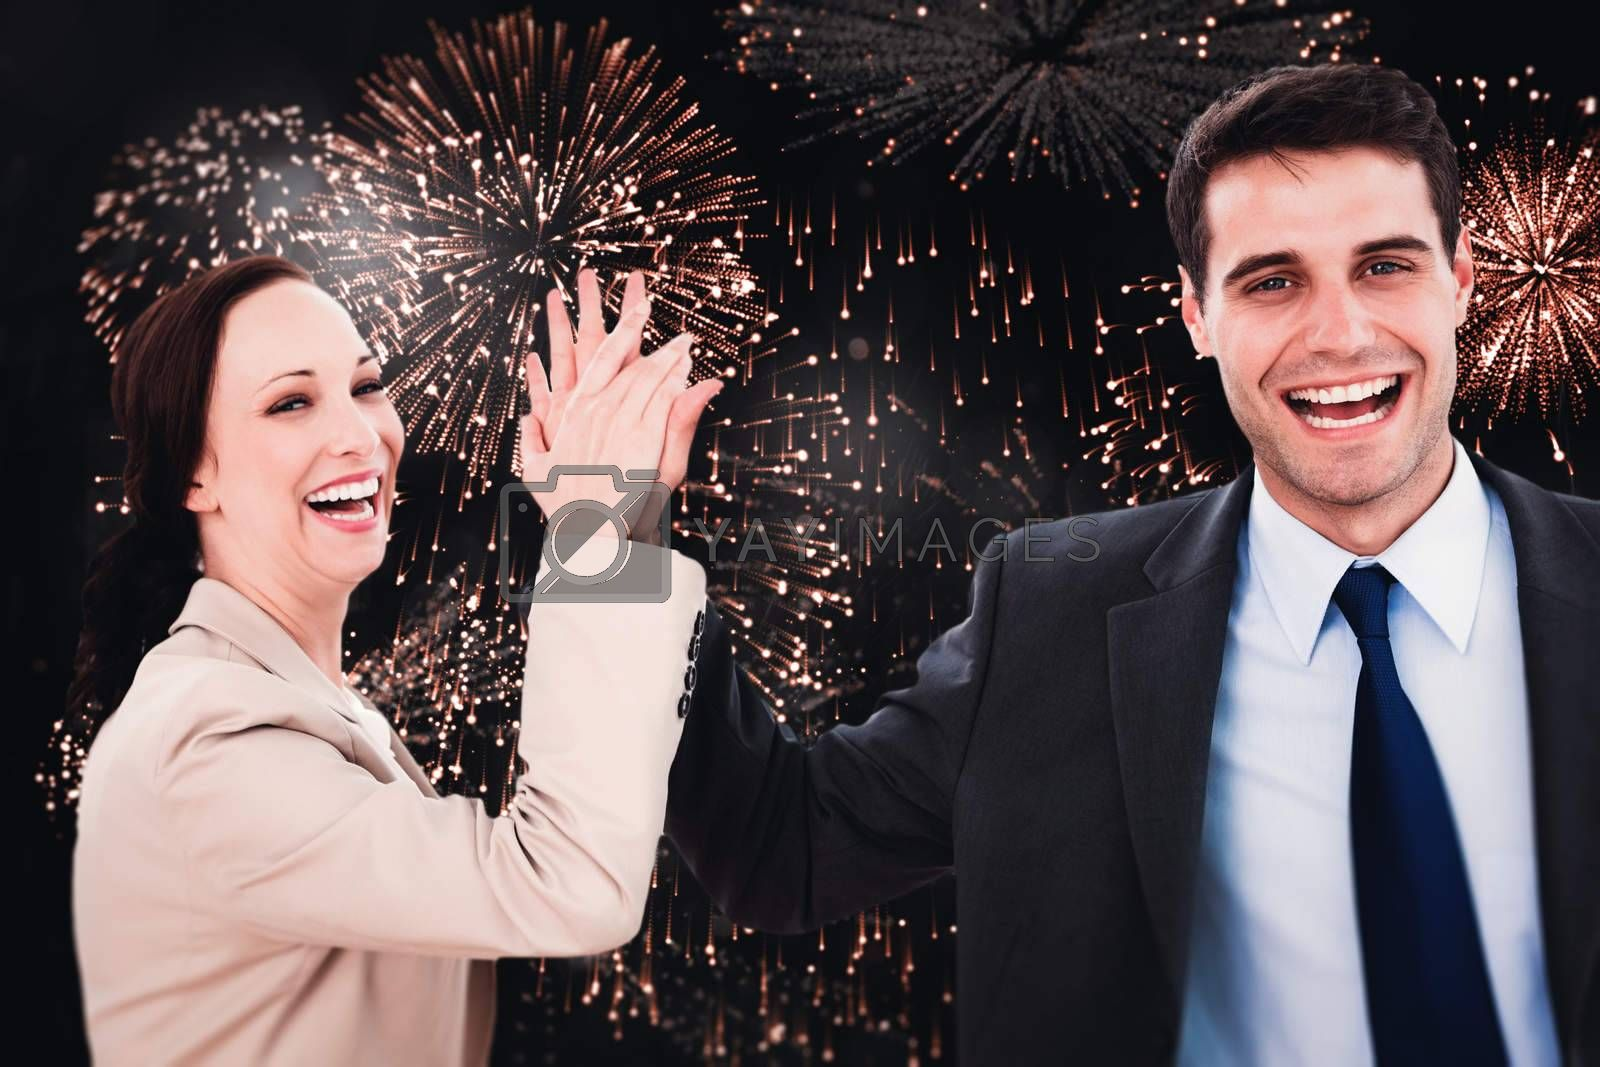 Cheerful workmates doing high five against colourful fireworks exploding on black background